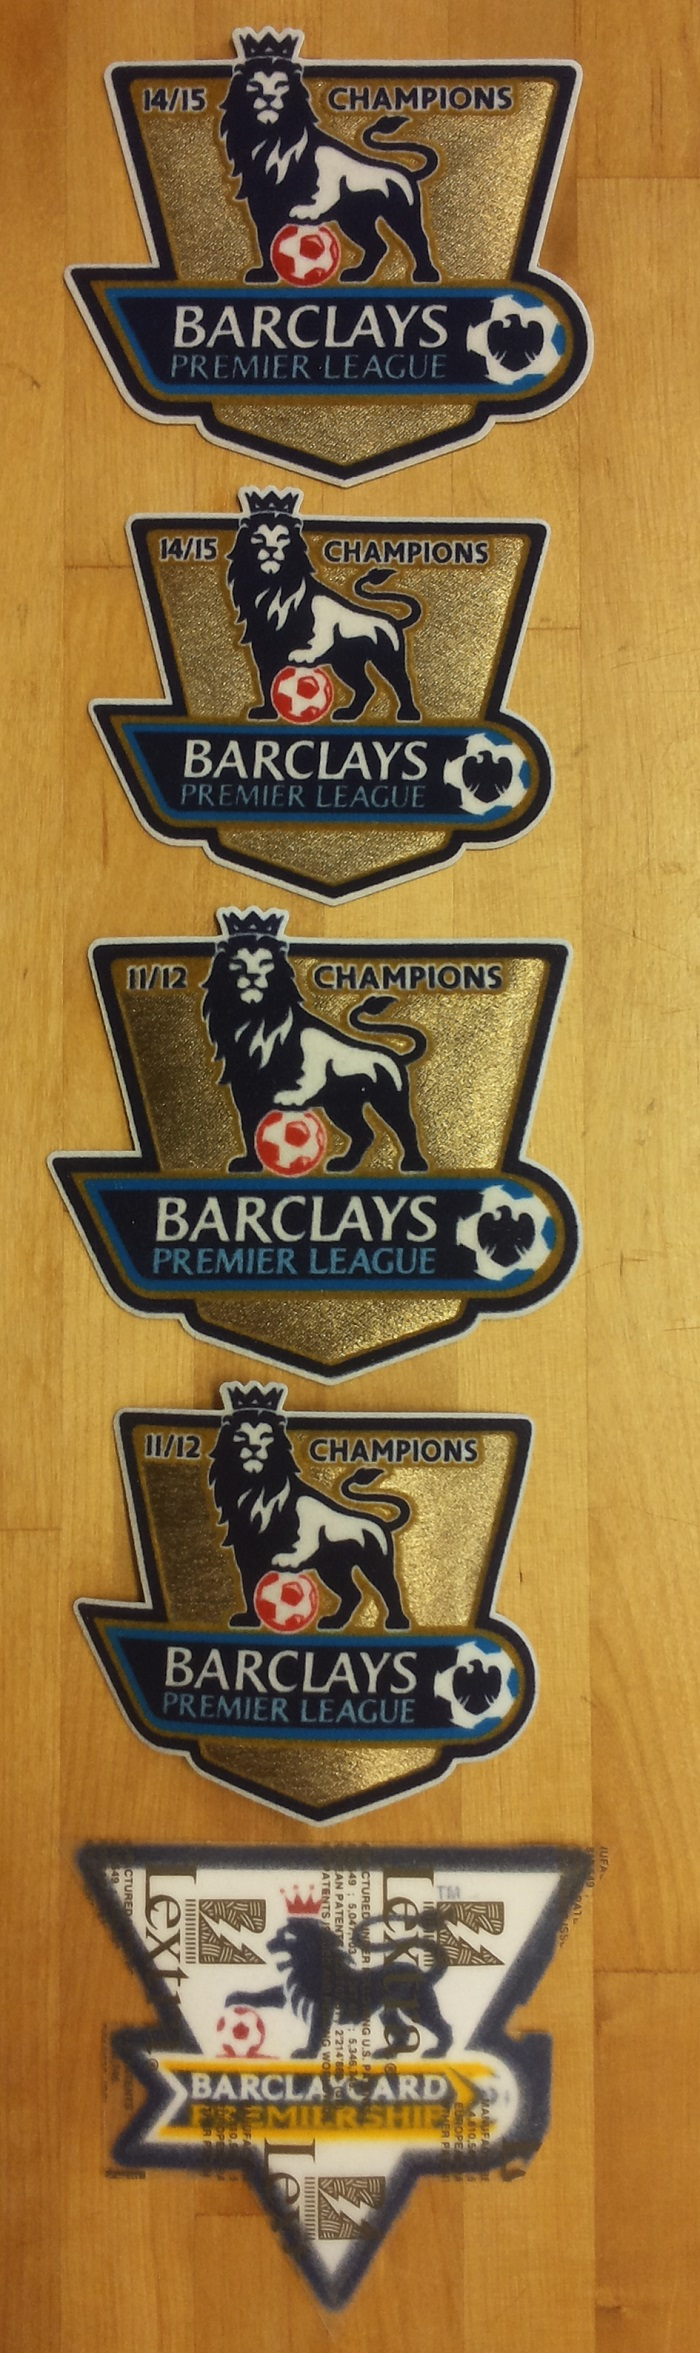 EPL Champs badges timeline 1992-2016